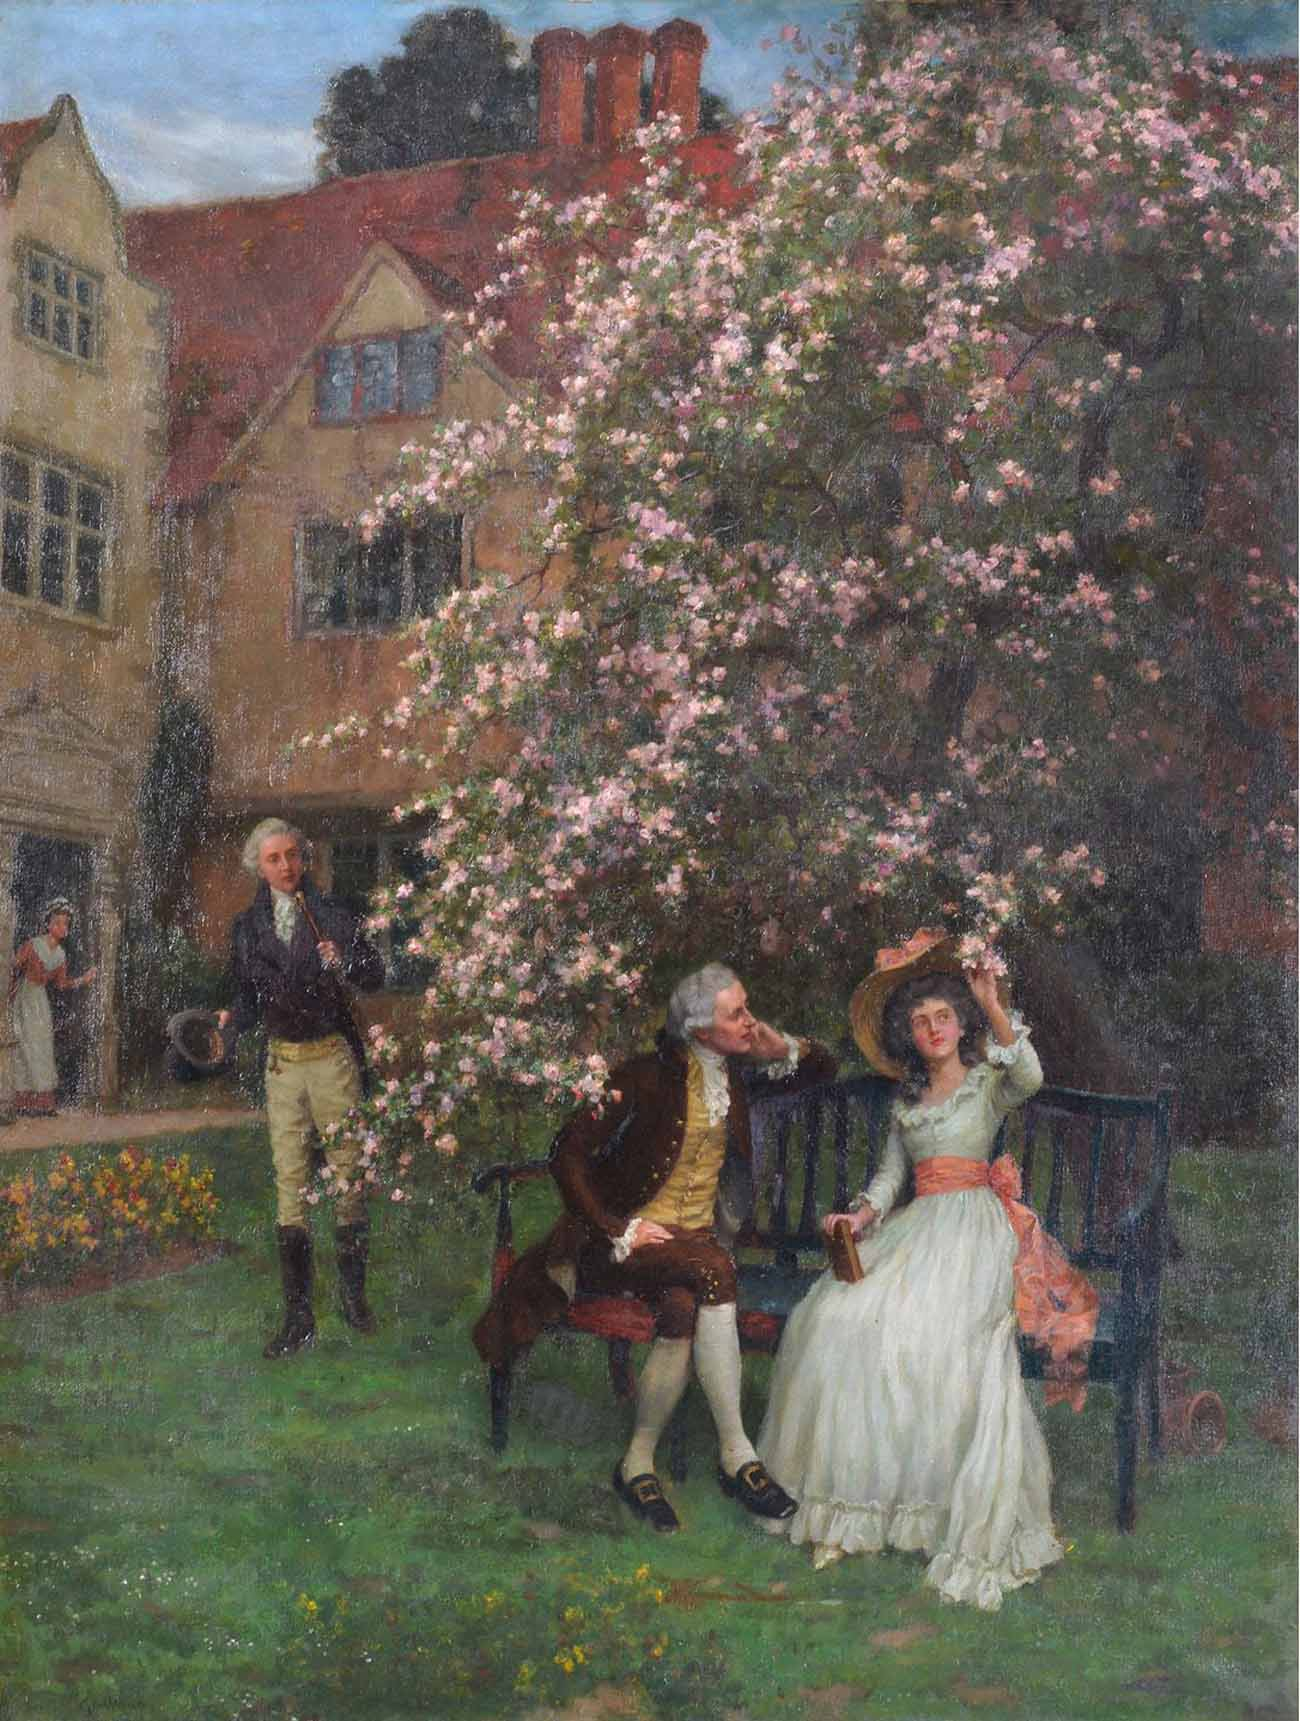 Under the Apple Blossom by CHARLES HAIGH-WOOD 1856-1927